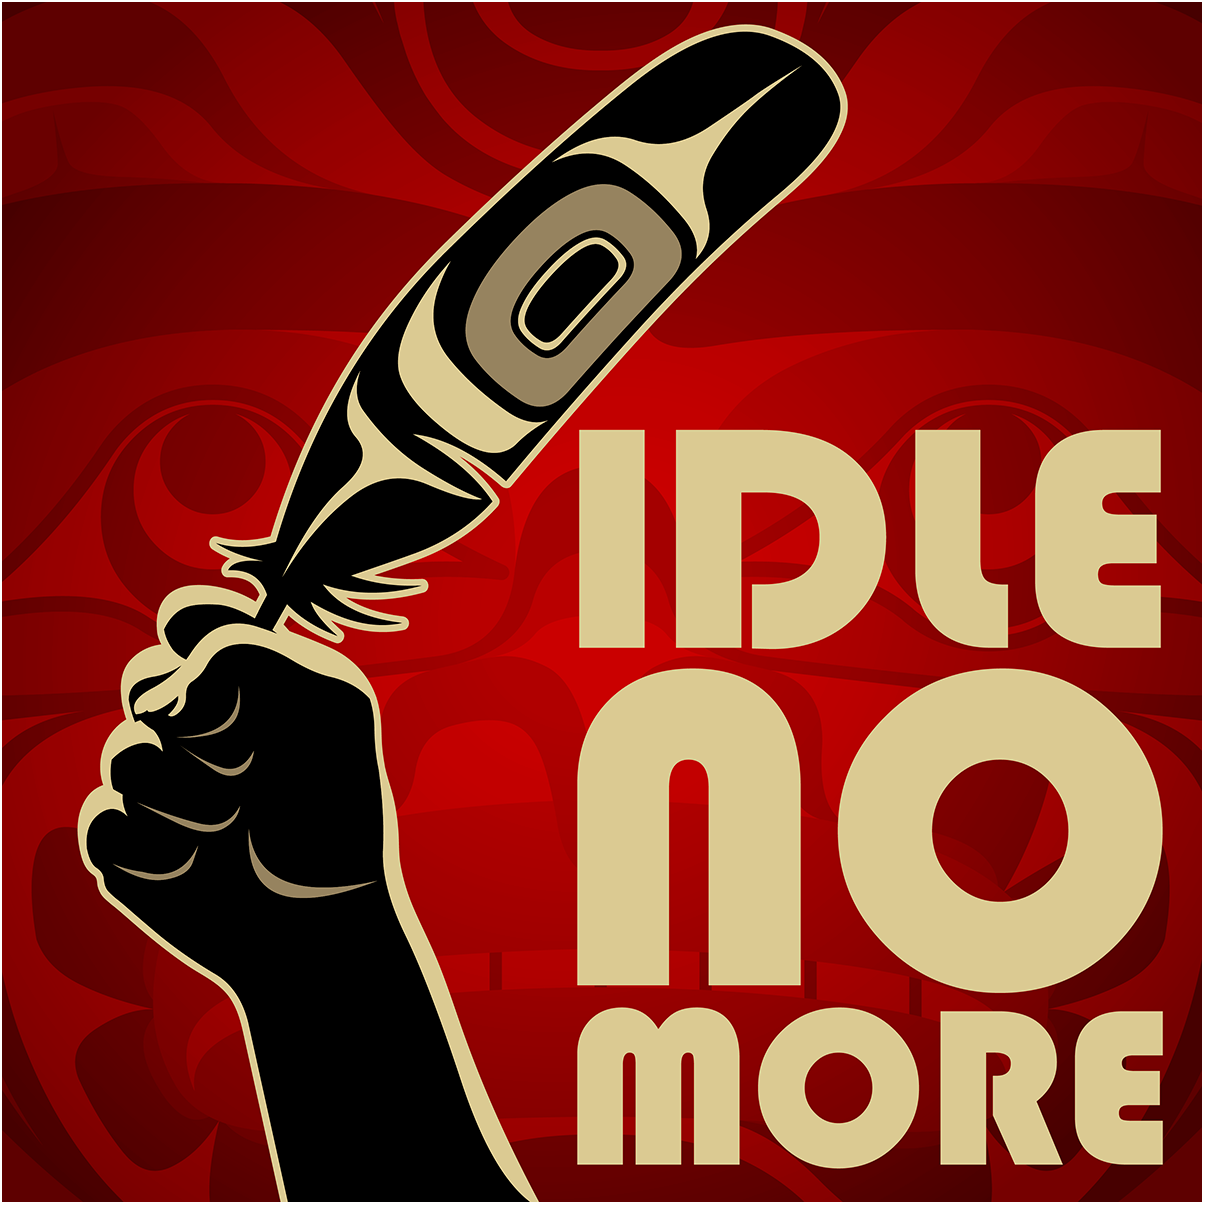 humour an unlikely weapon for aboriginal rights socialist 2013 01 02 idlenomorehuffpo